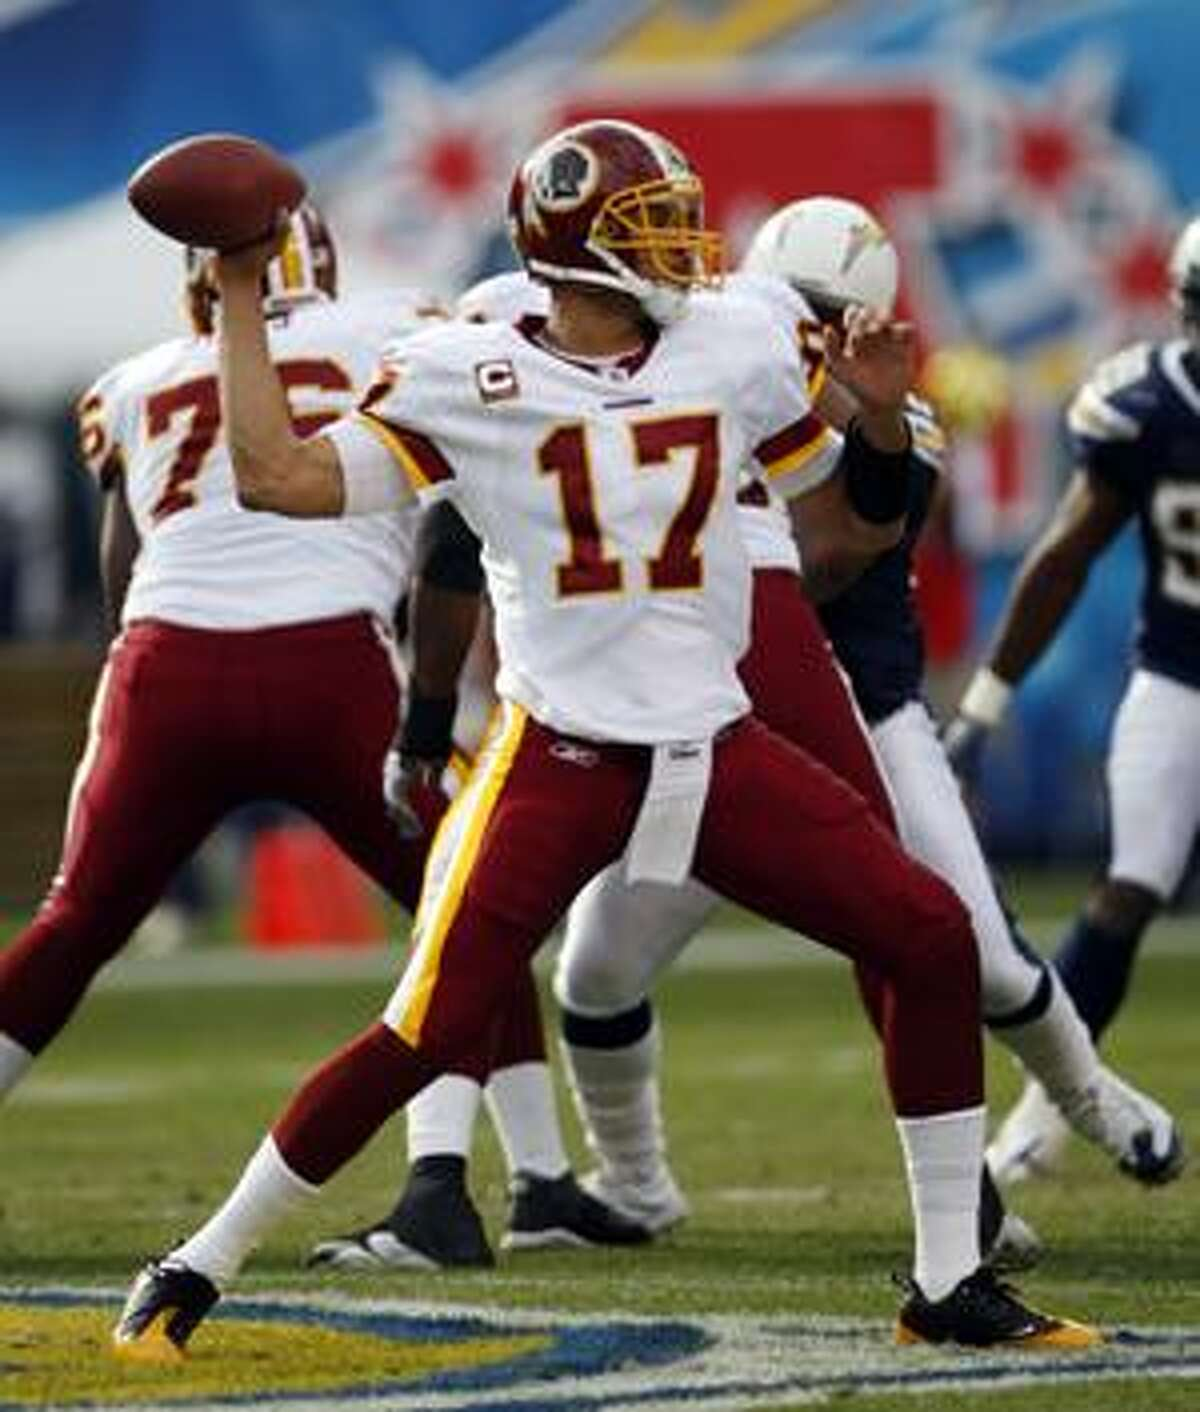 AP In this Jan. 3 file photo, Washington Redskins quarterback Jason Campbell throws a pass during the first quarter of a game against the San Diego Chargers in San Diego. The Oakland Raiders have acquired quarterback Jason Campbell from the Washington Redskins for an undisclosed future draft pick. The deal was announced at the NFL draft on Saturday.